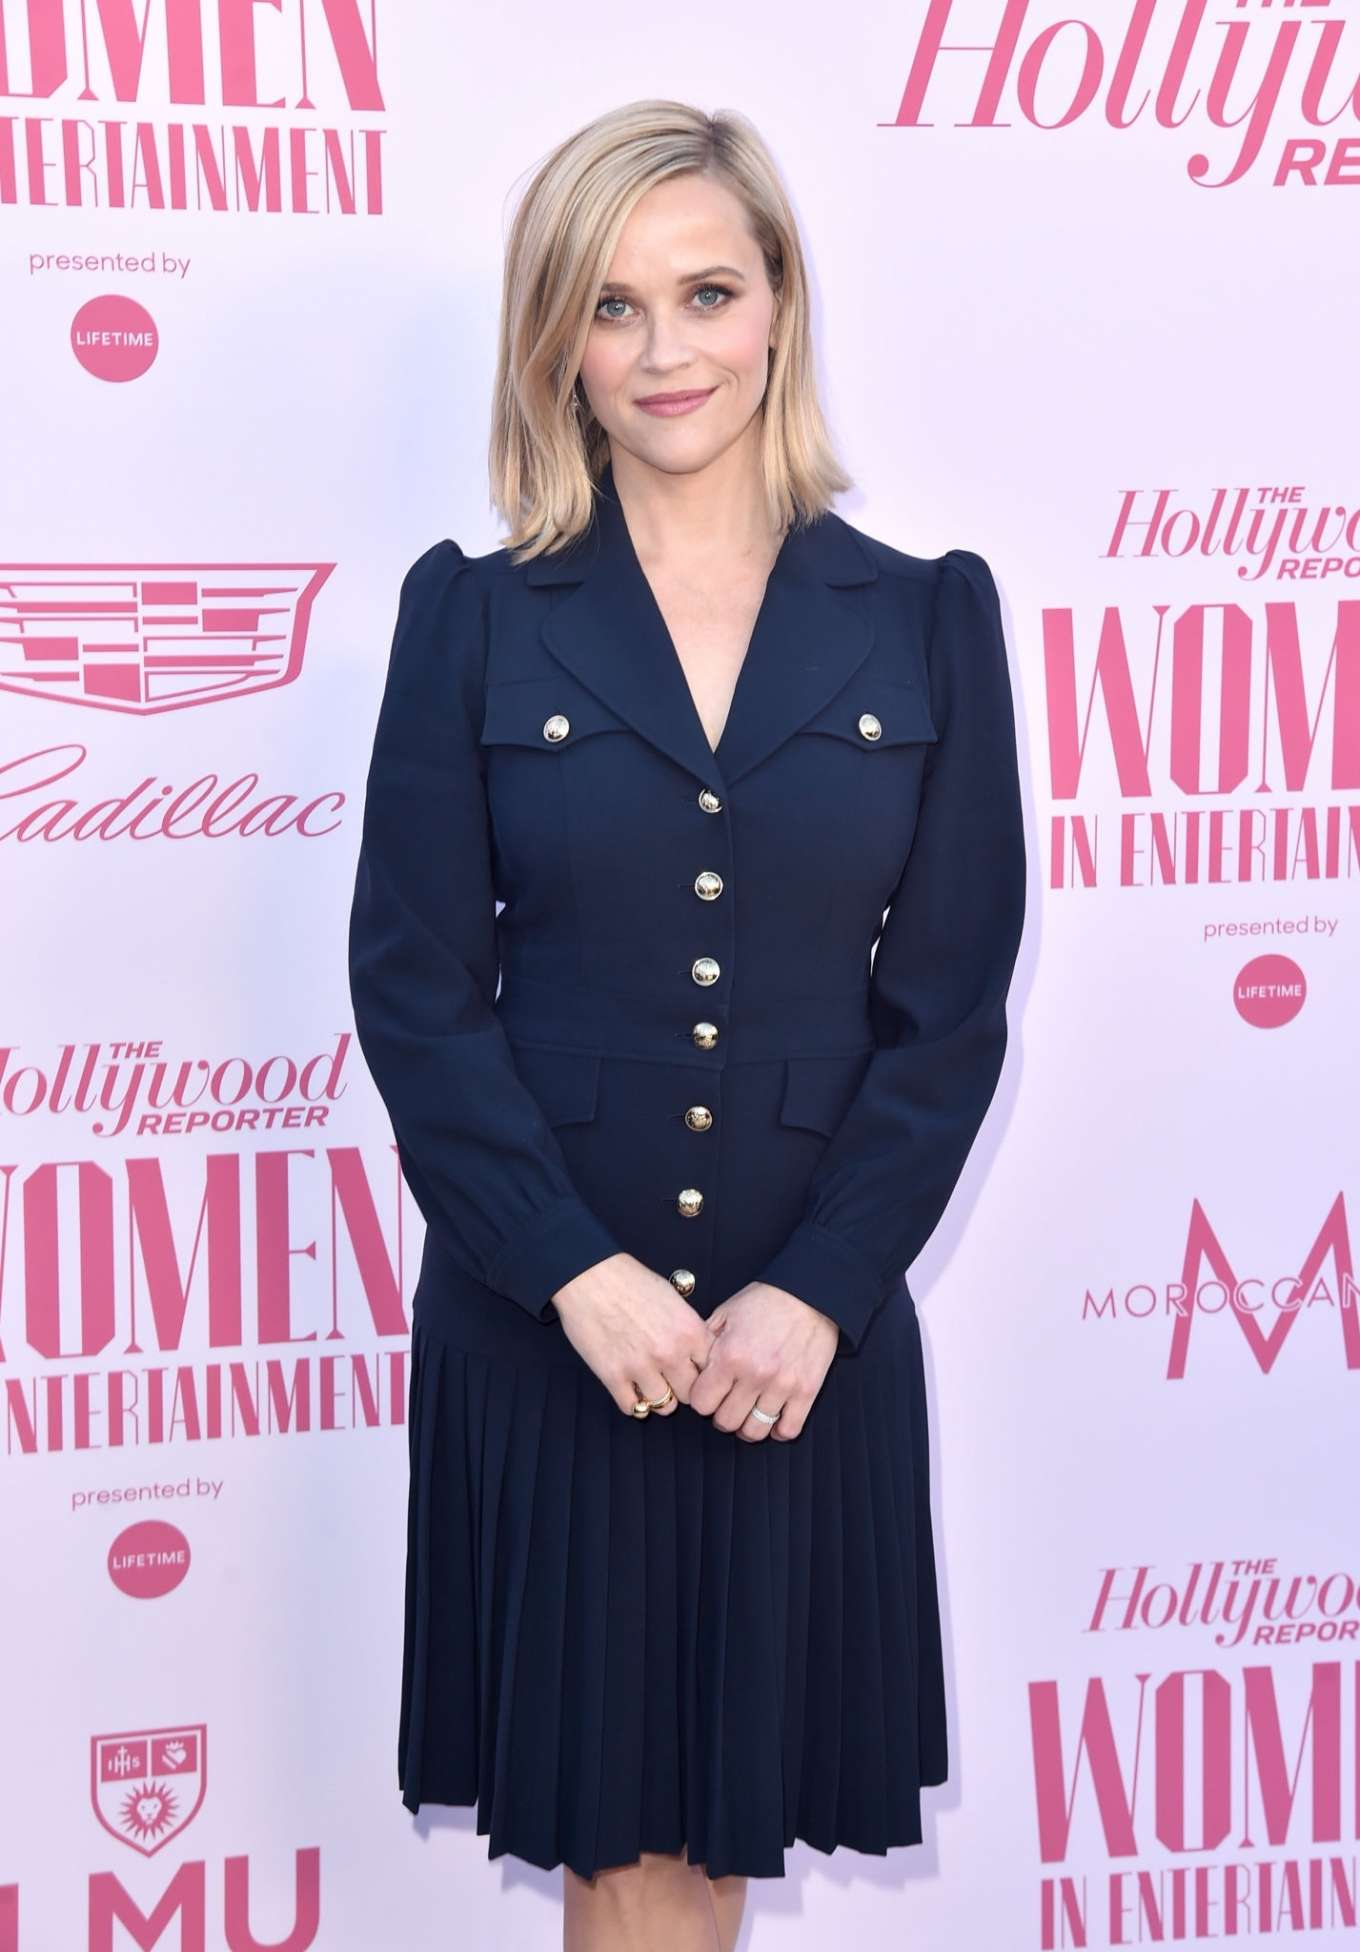 Reese Witherspoon - The Hollywood Reporter's Power 100 Women in Entertainment in Hollywood